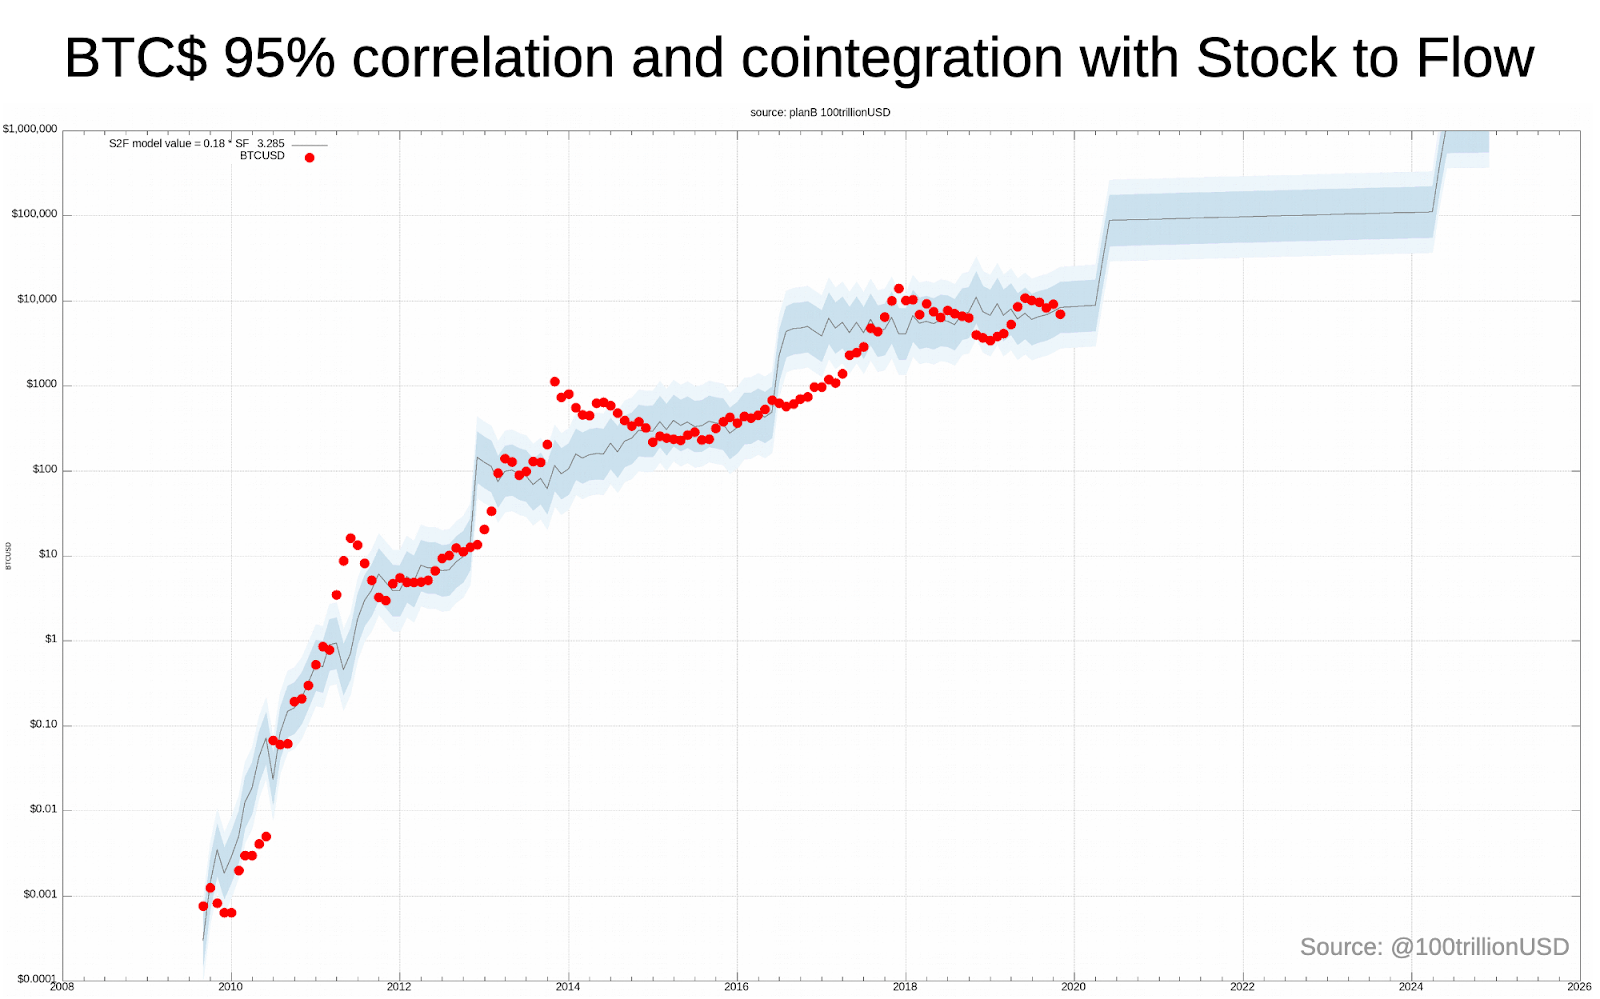 Chart showing Bitcoin's correlation and cointegration with the stock-to-flow model